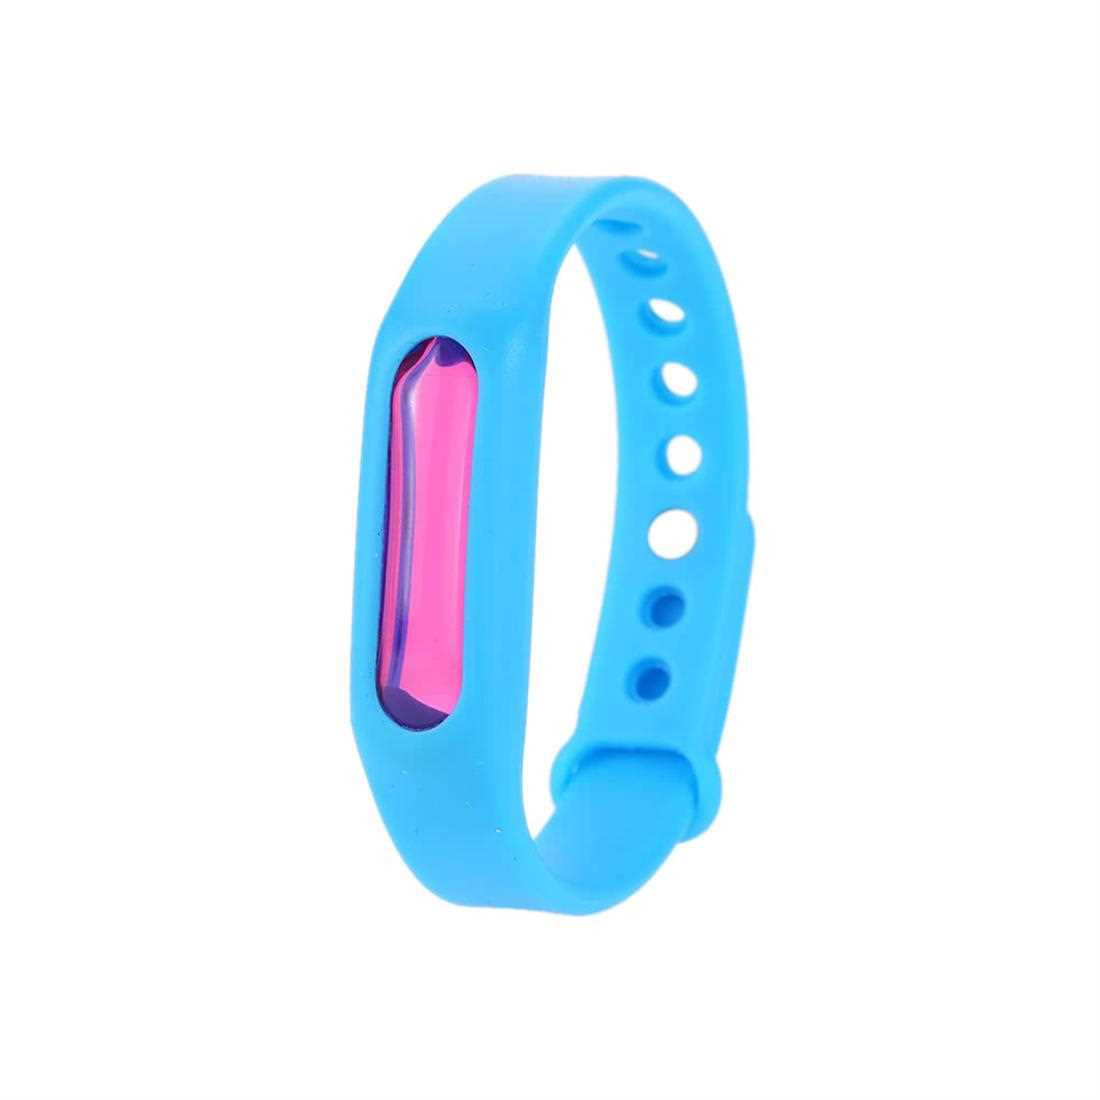 Mosquito Repellent Bracelets Natural Bug Insect Protection Pest Control Waterproof DEET Free Wristband for Kids & Adult